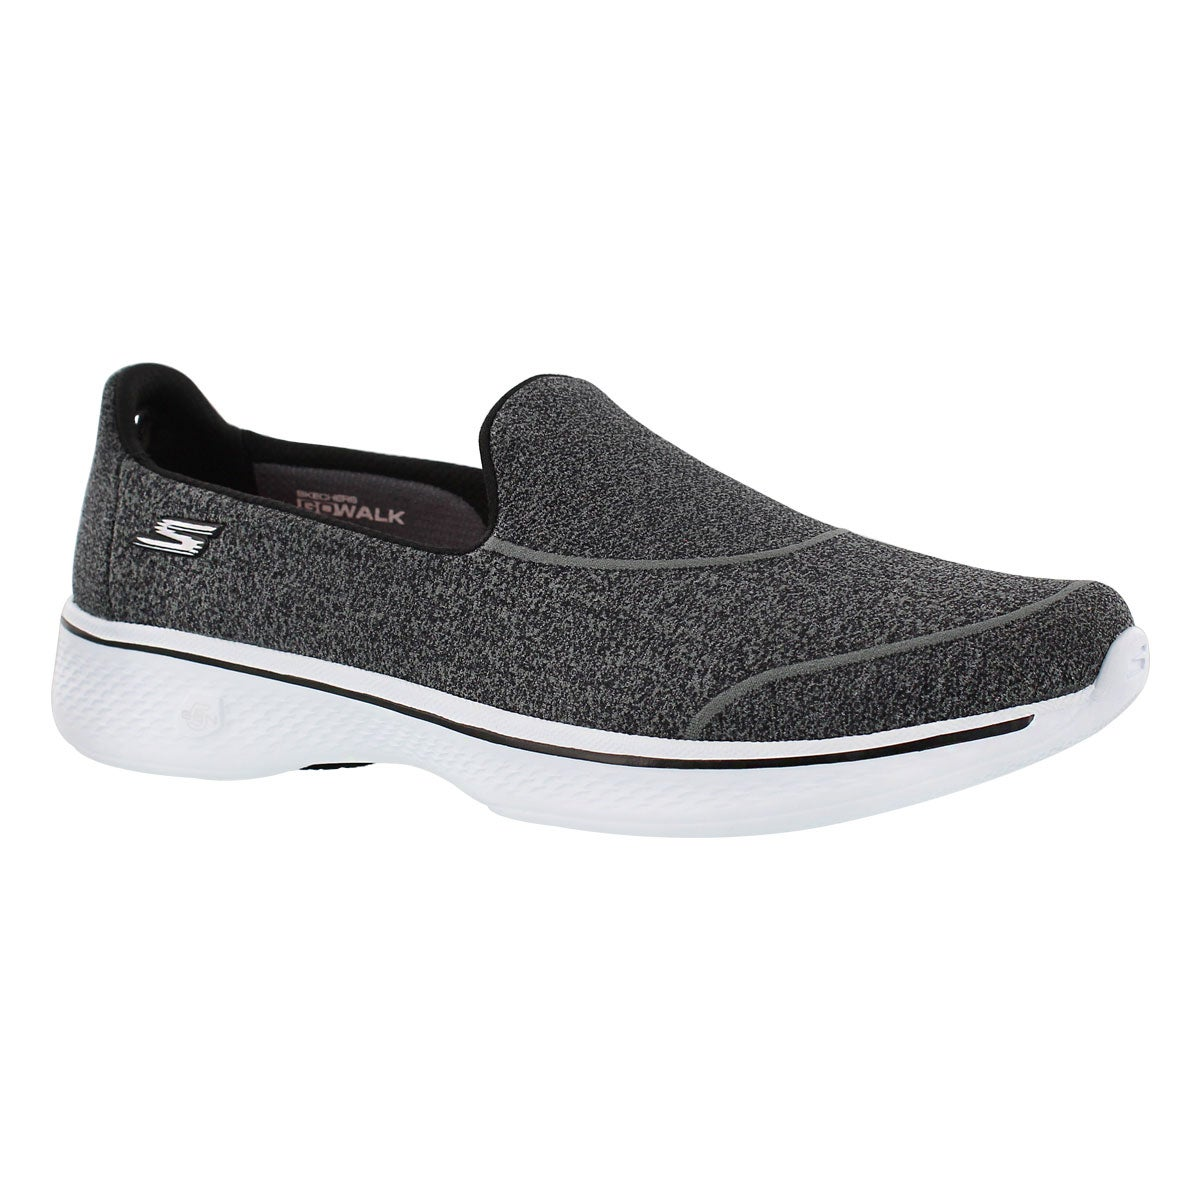 Lds GOWalk4 SuperSock bk/wt slip on shoe